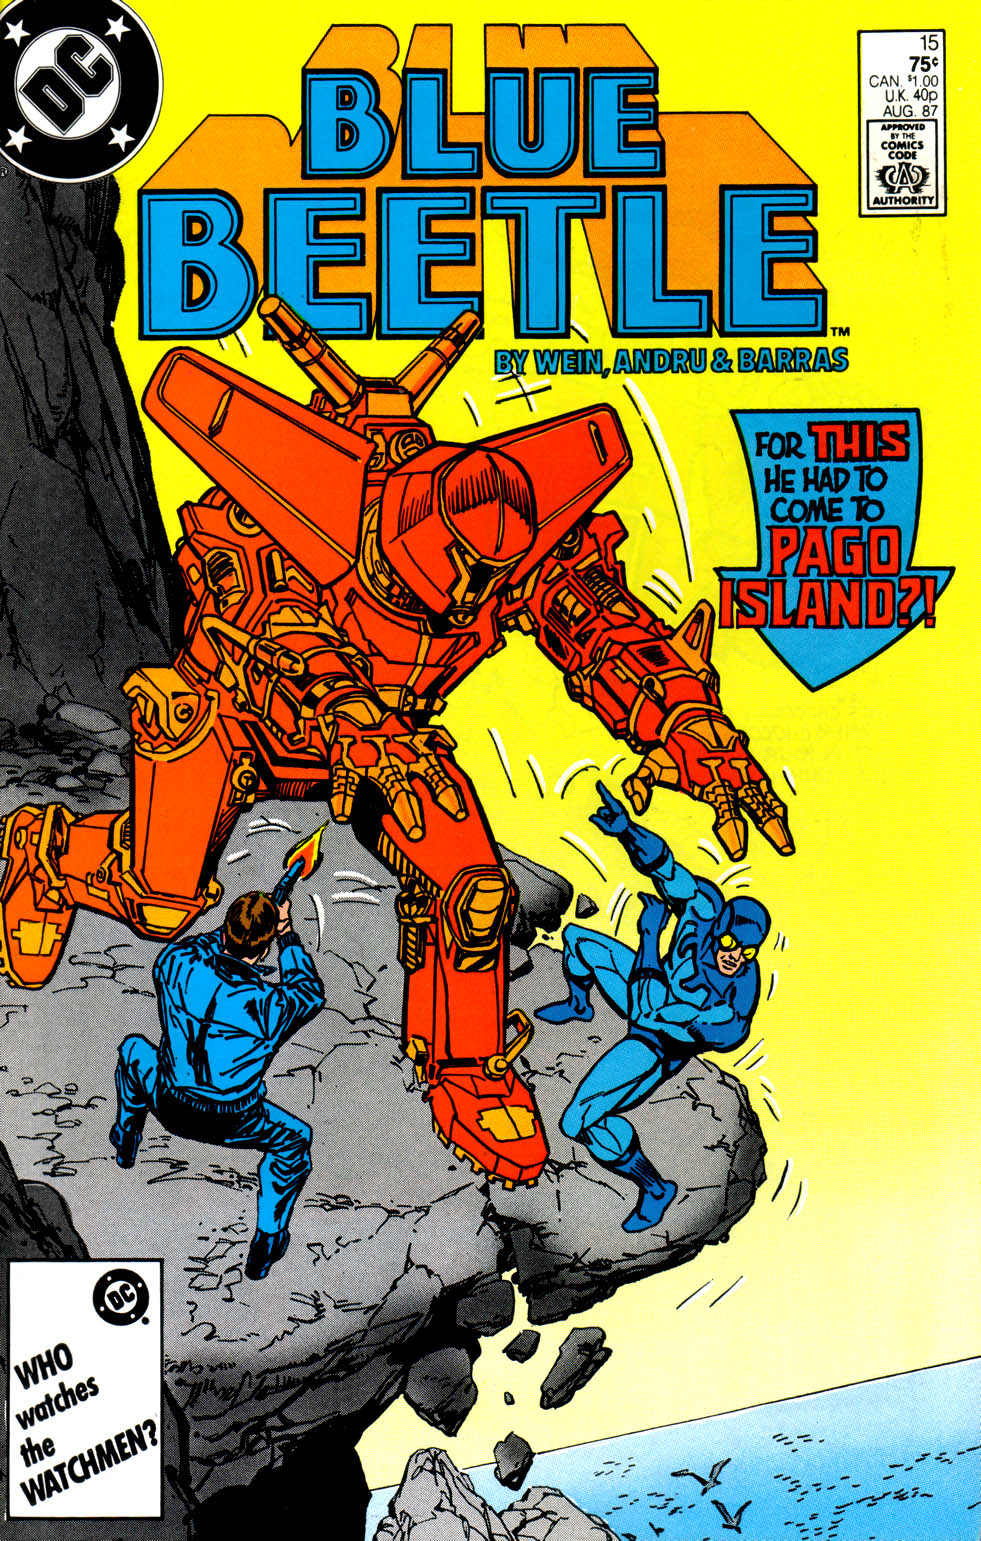 blue beetle 1986 issue 15 read full comics online for free